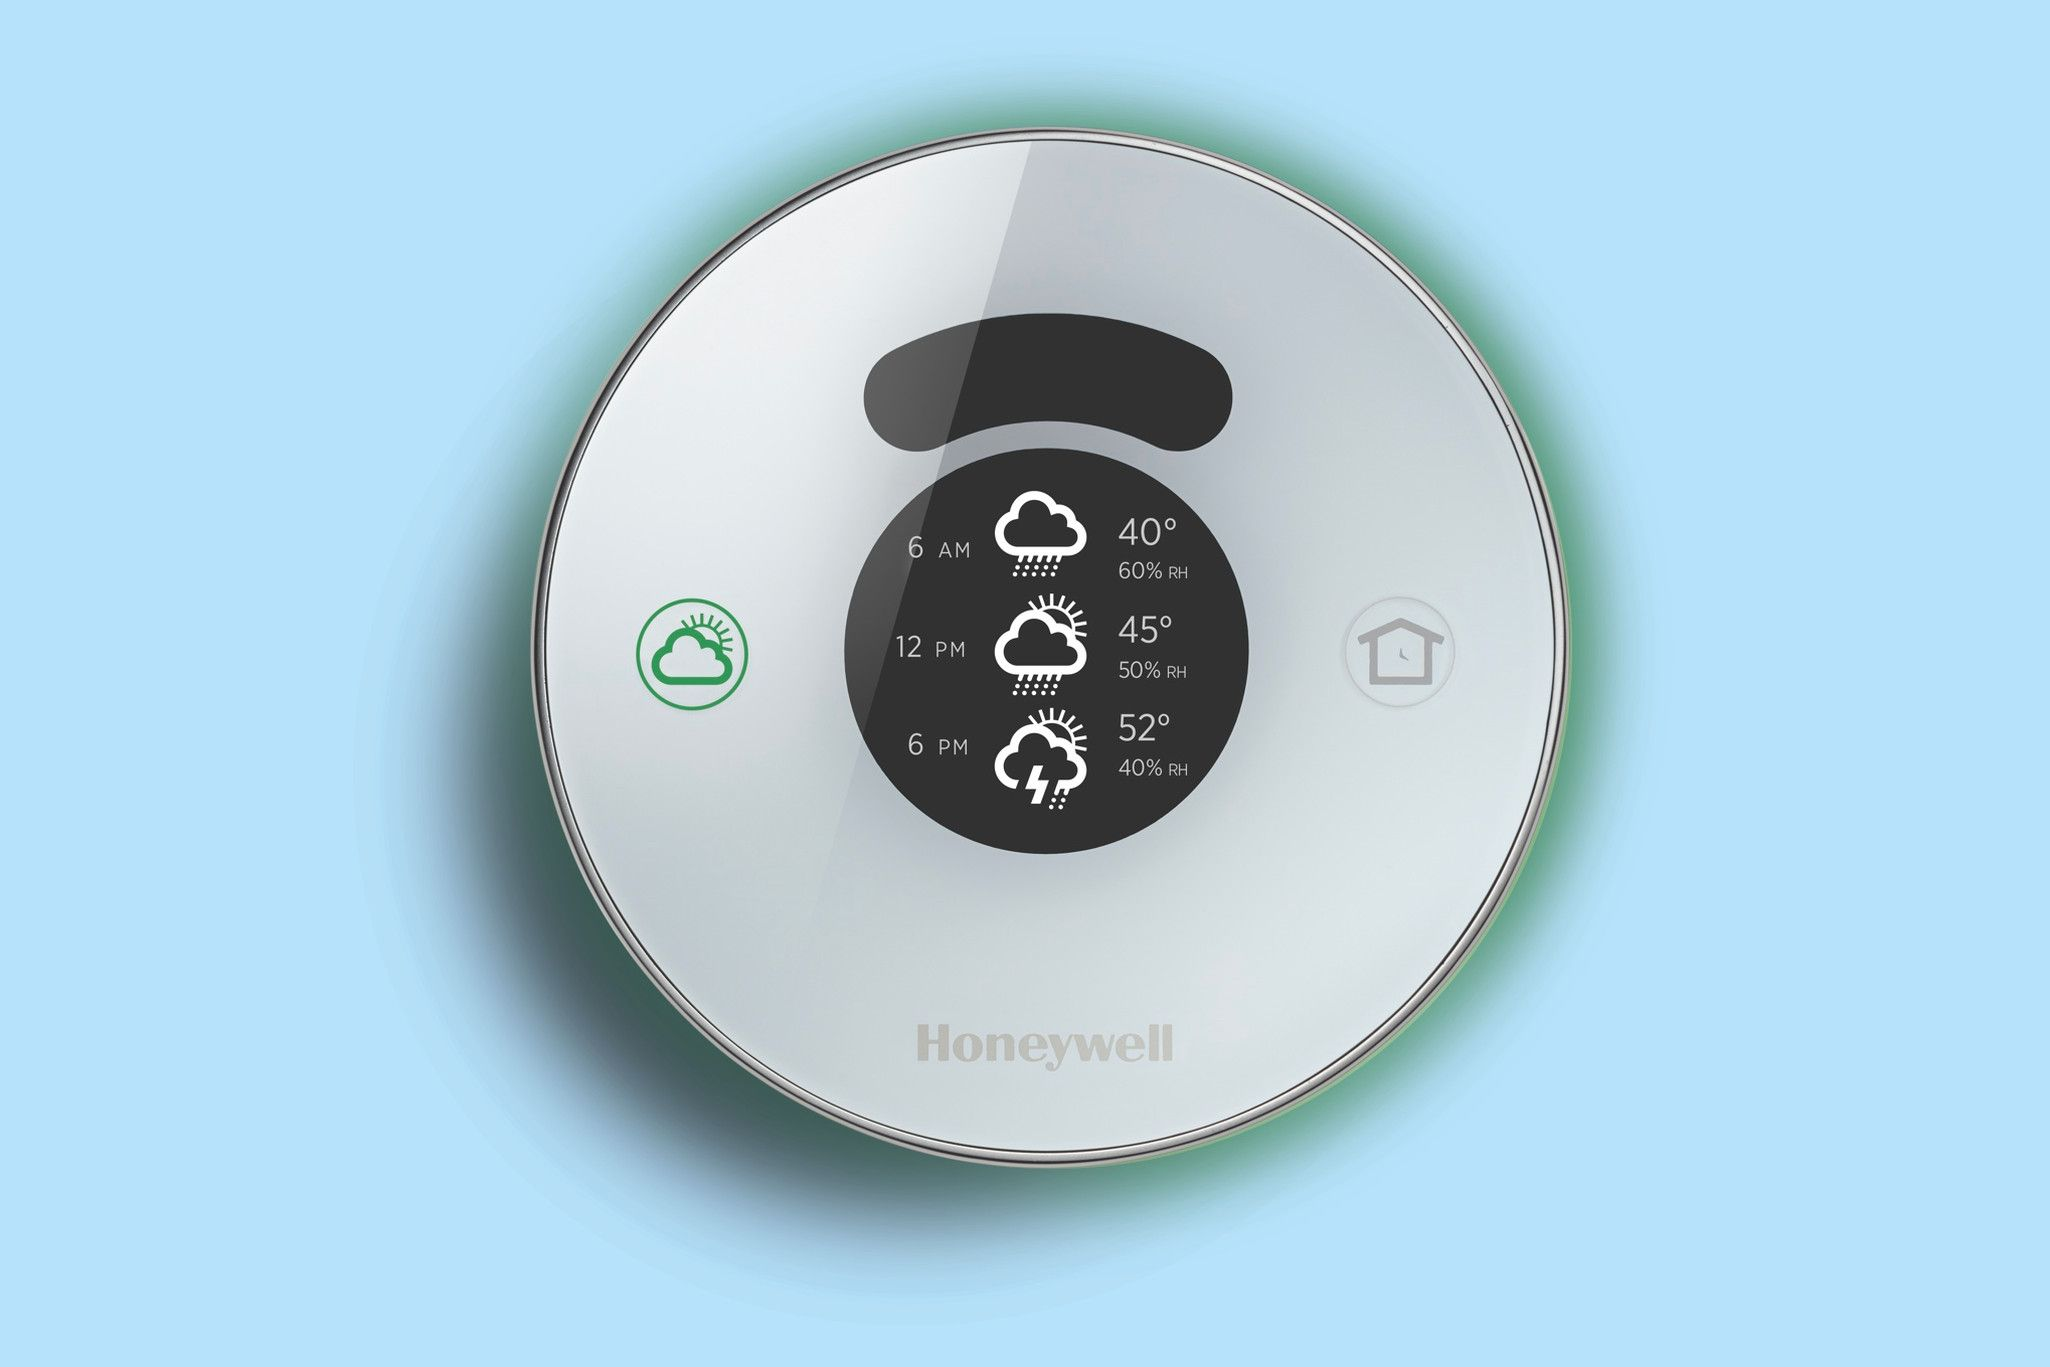 The heat is on Honeywell is finally challenging the Nest